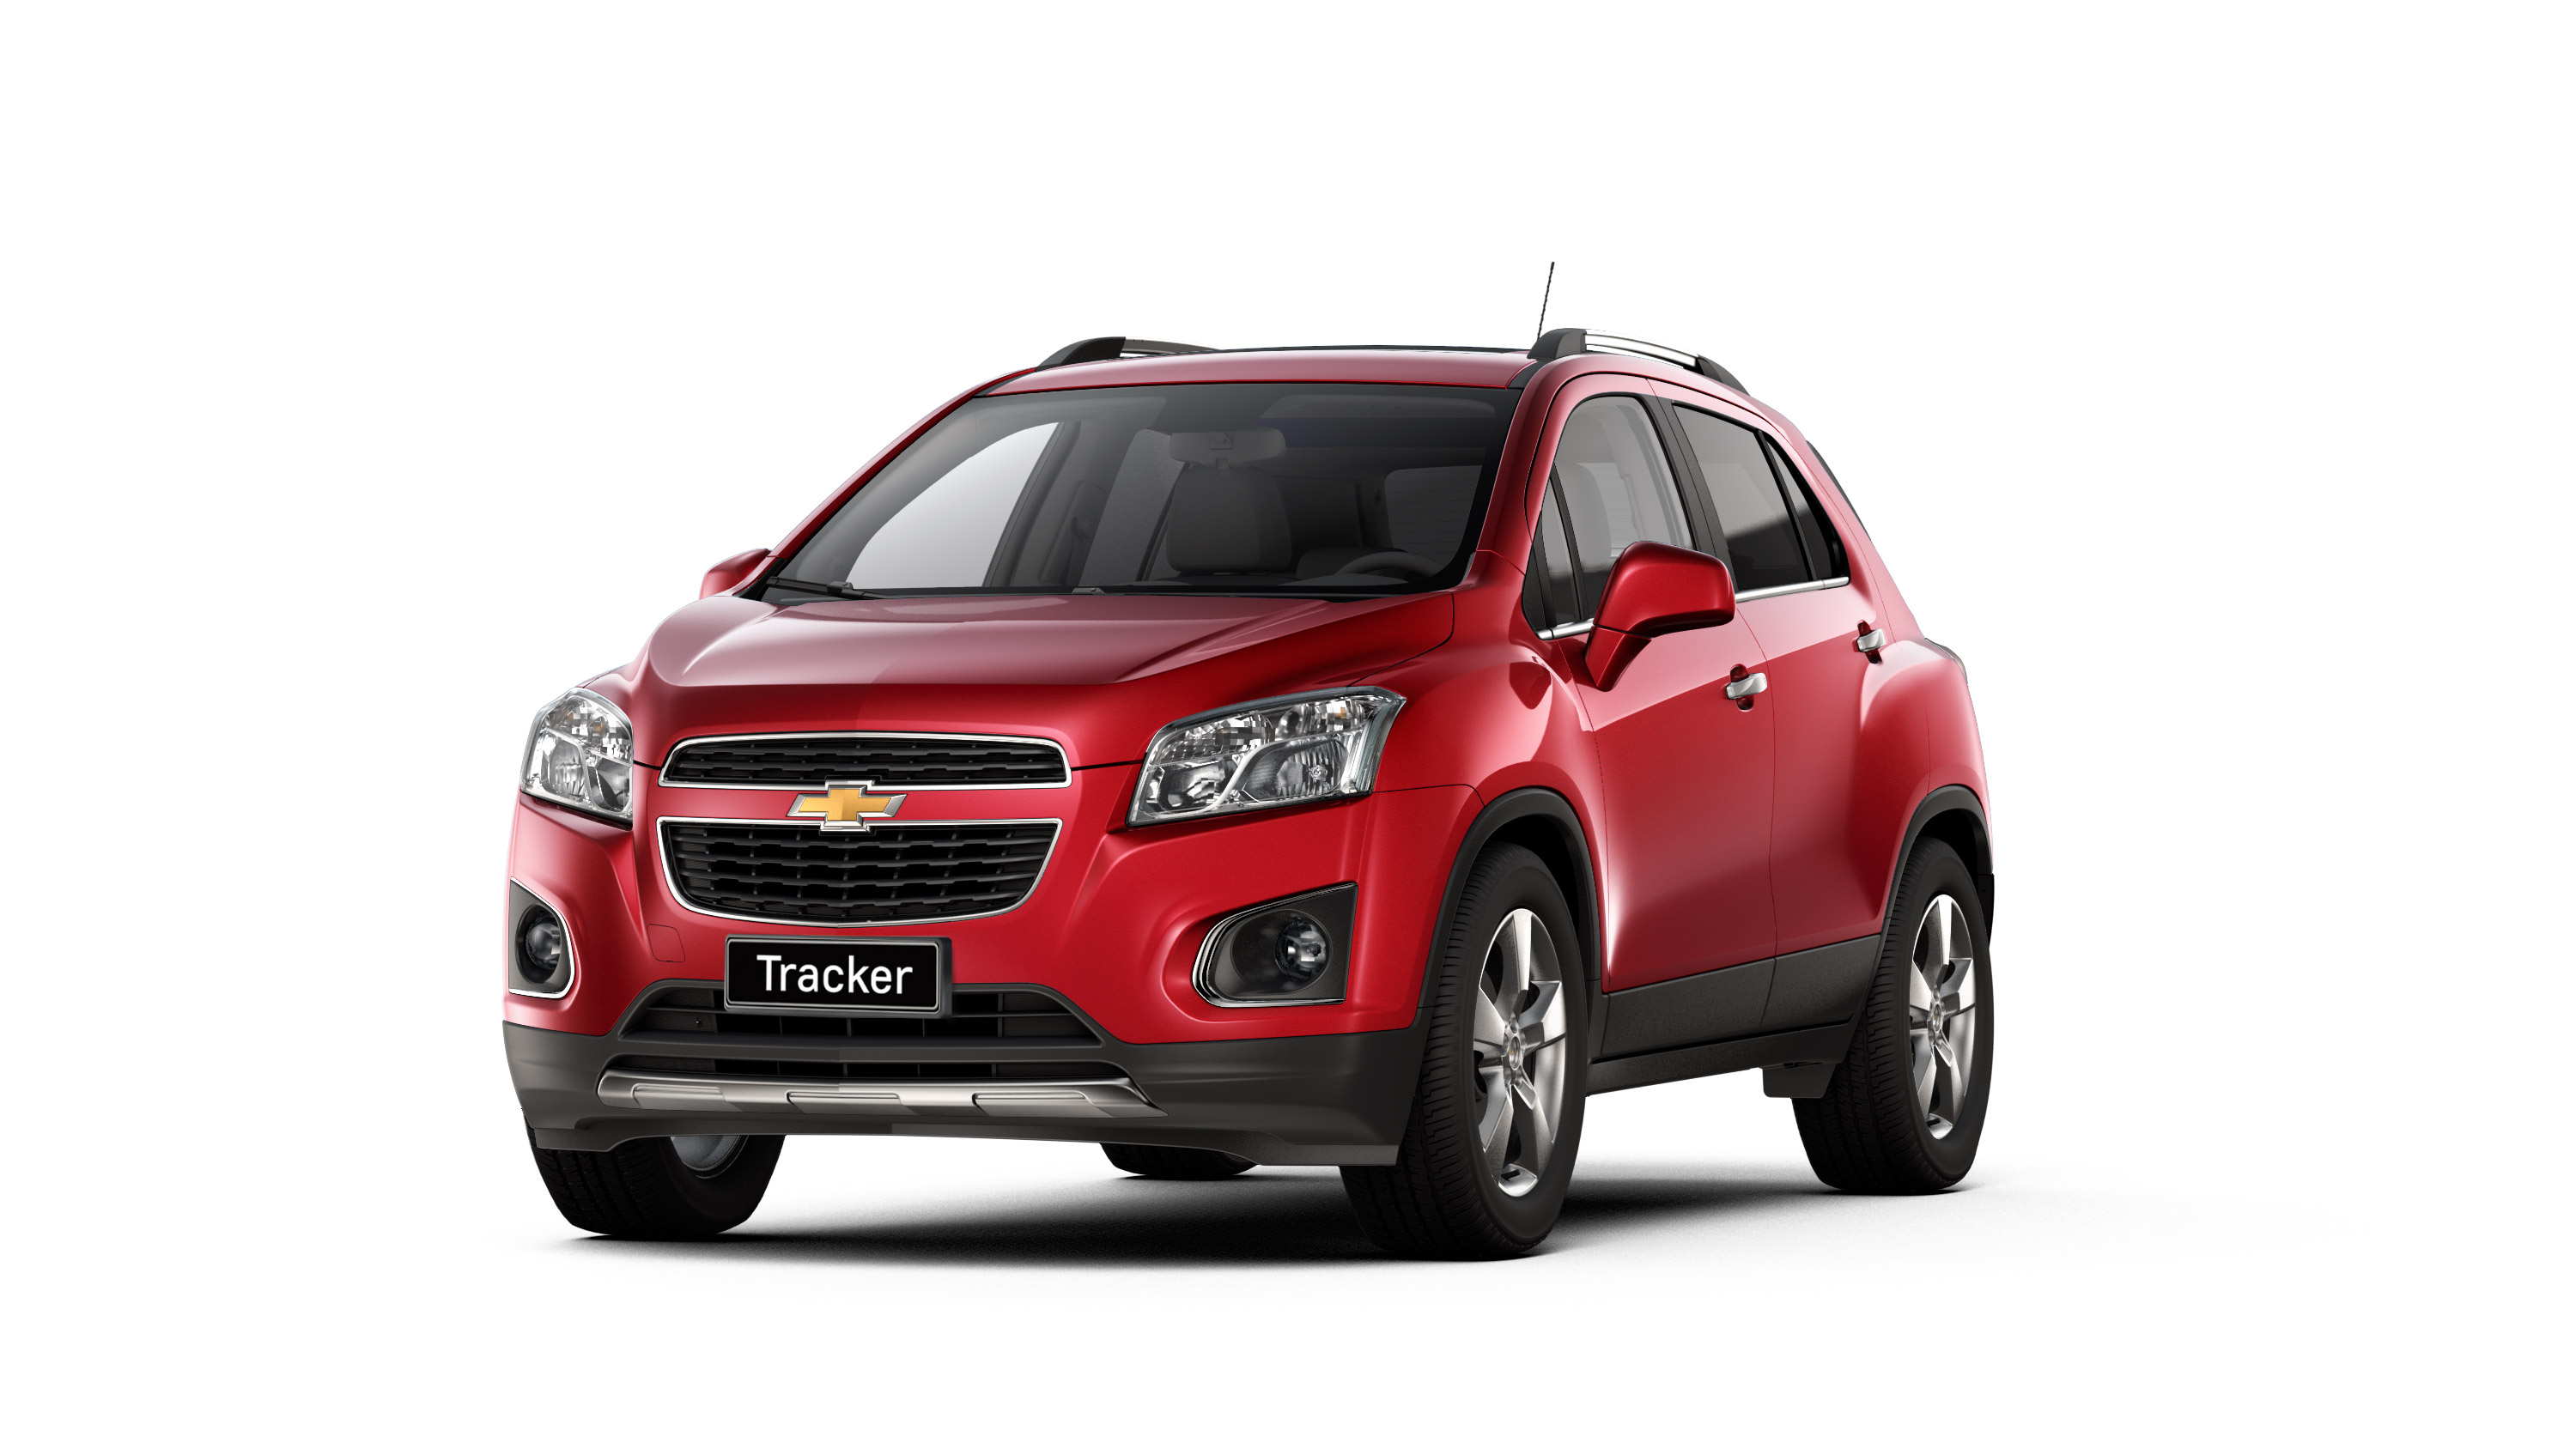 chevrolet tracker images #15